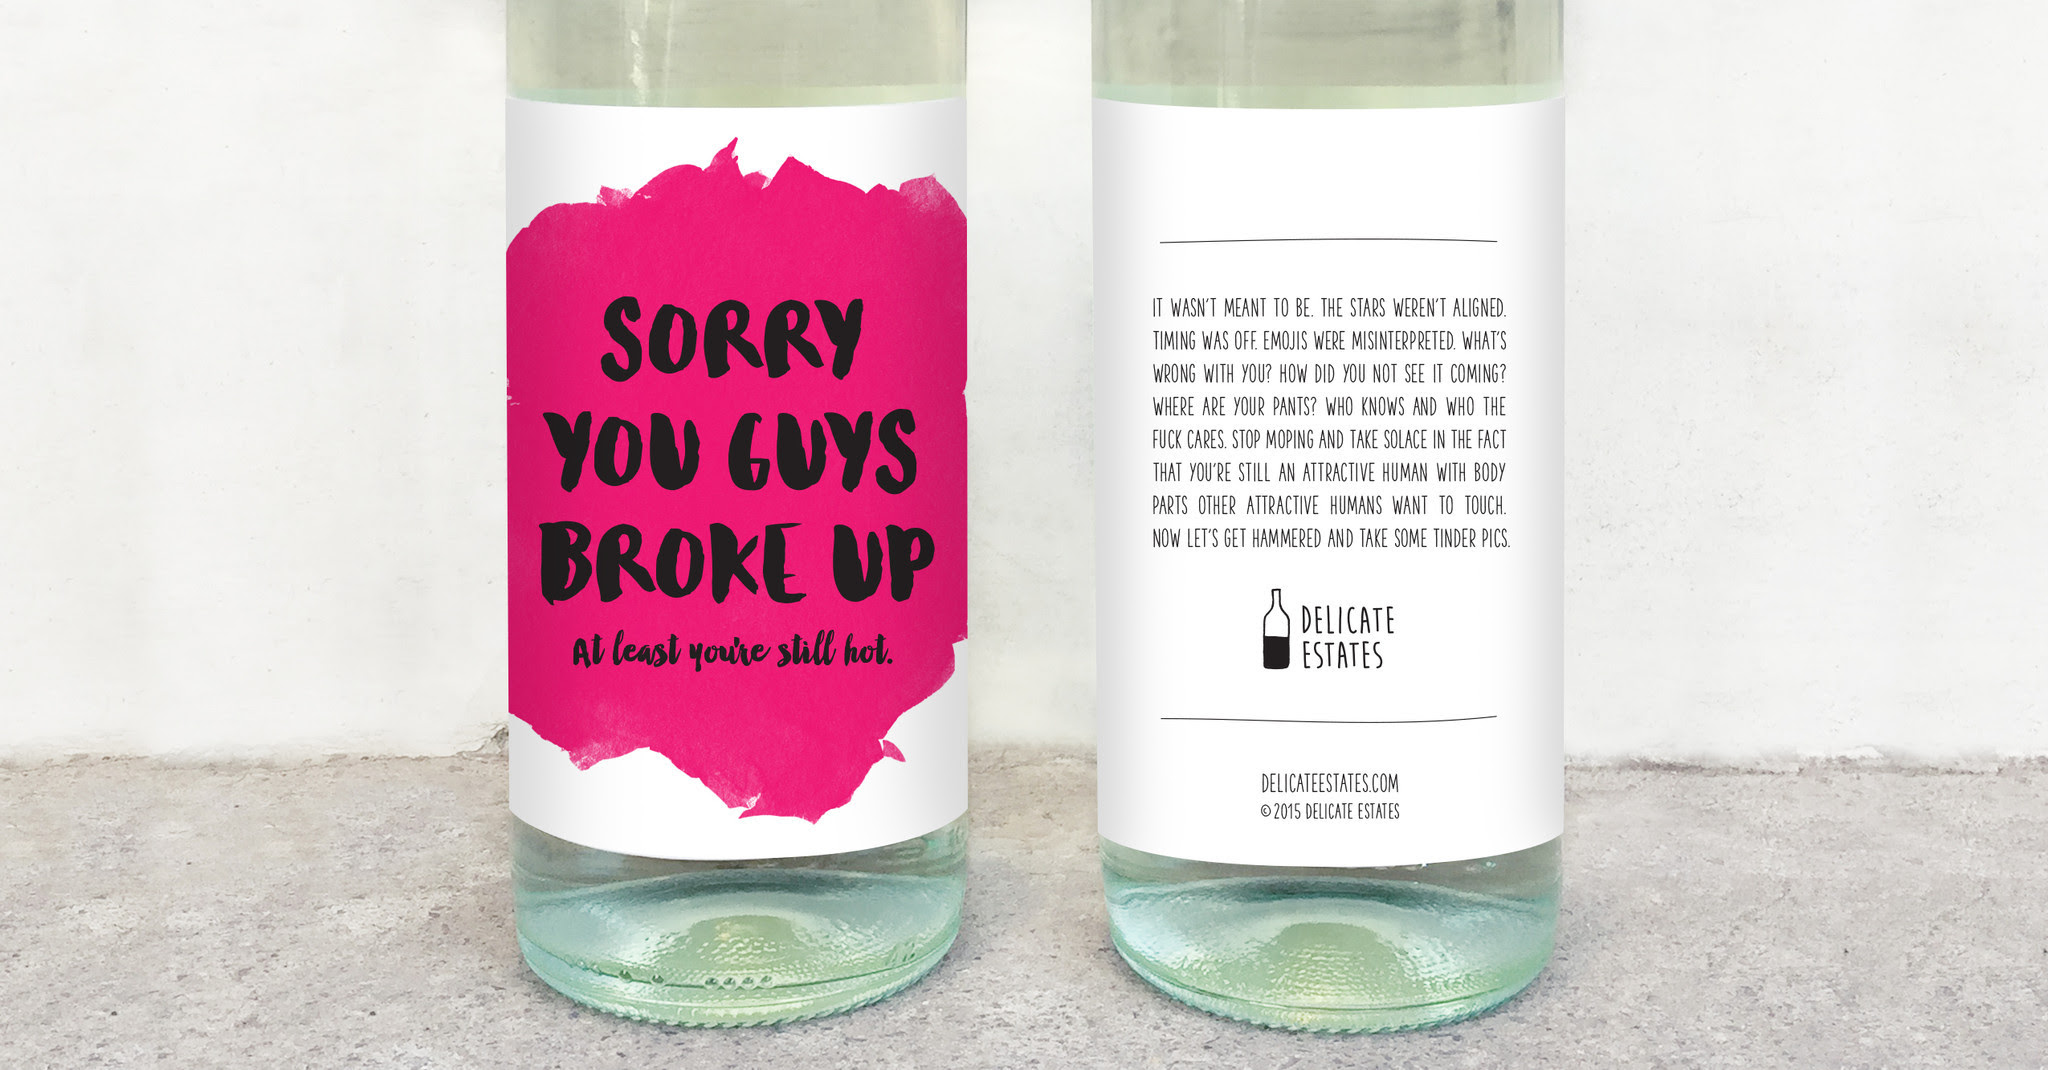 drink your feelings sorry your guys broke up delicate estates